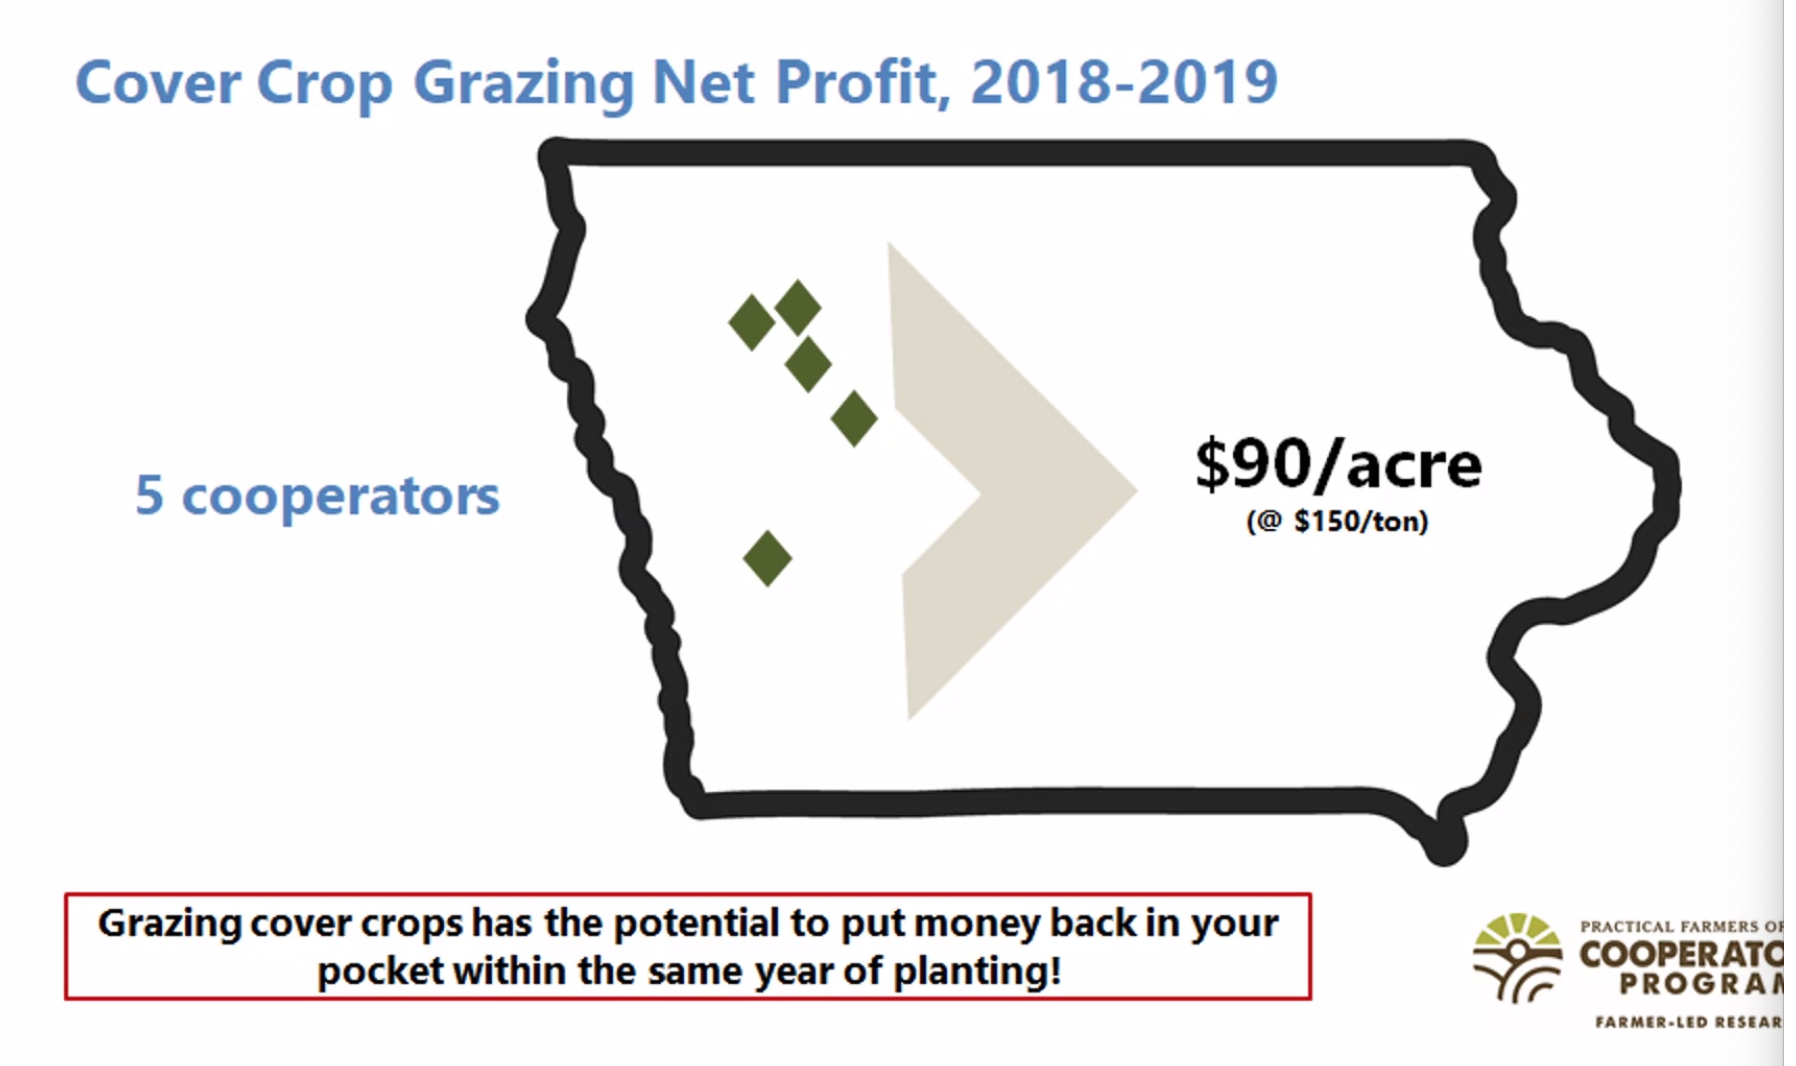 Grazing cover crops has teh potential to put money back in your pocket within the same year of planting.